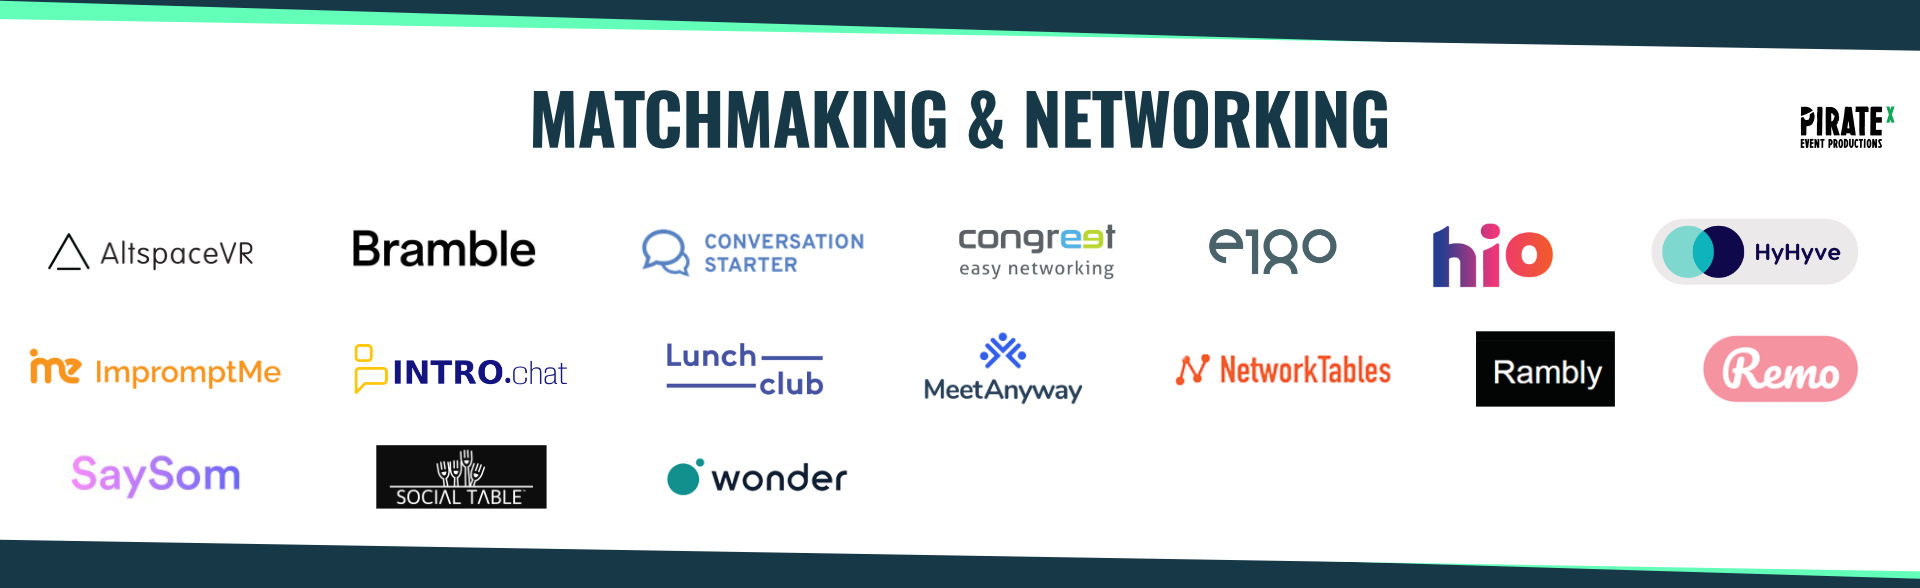 Overview of the Eventtech Landscape April 2021 Update Matchmaking & Networking Tools Category